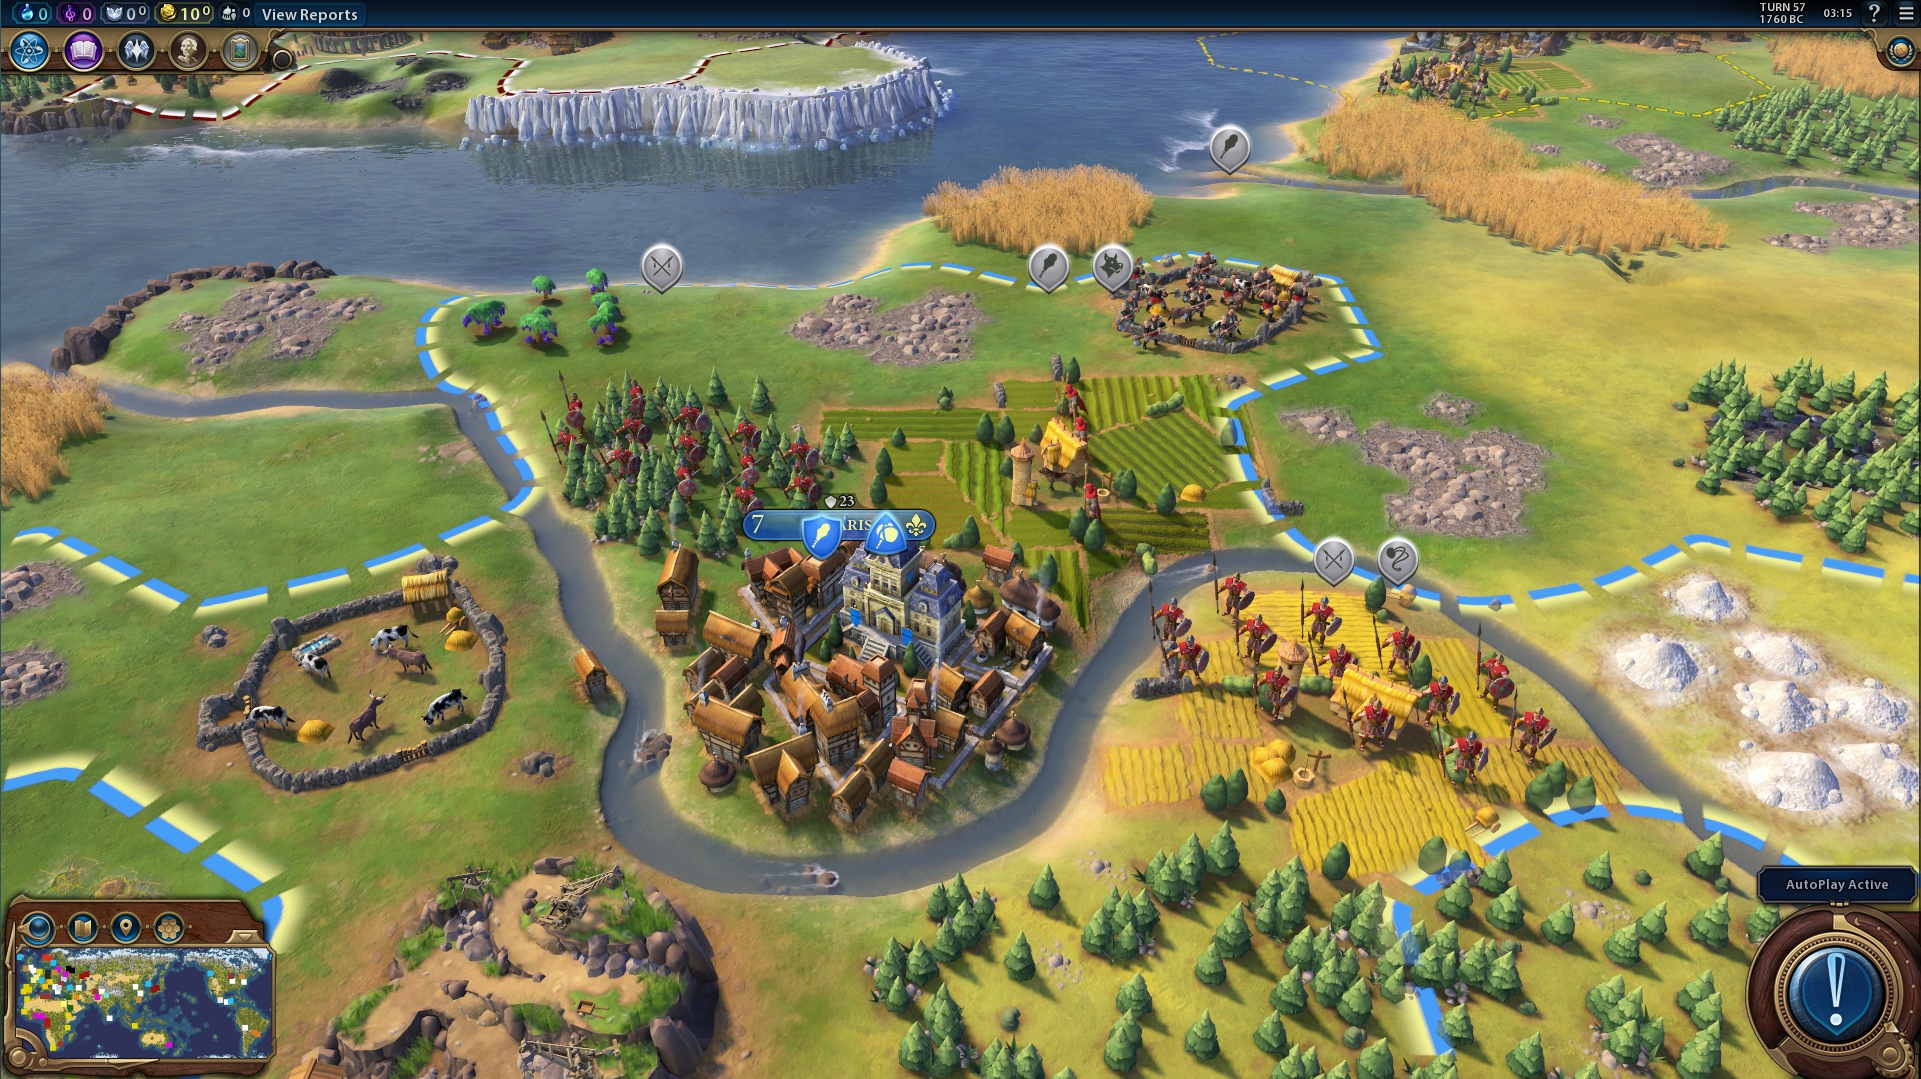 Civ 6 Mods: Top 5 Graphic/Artistic mods you NEED to try in